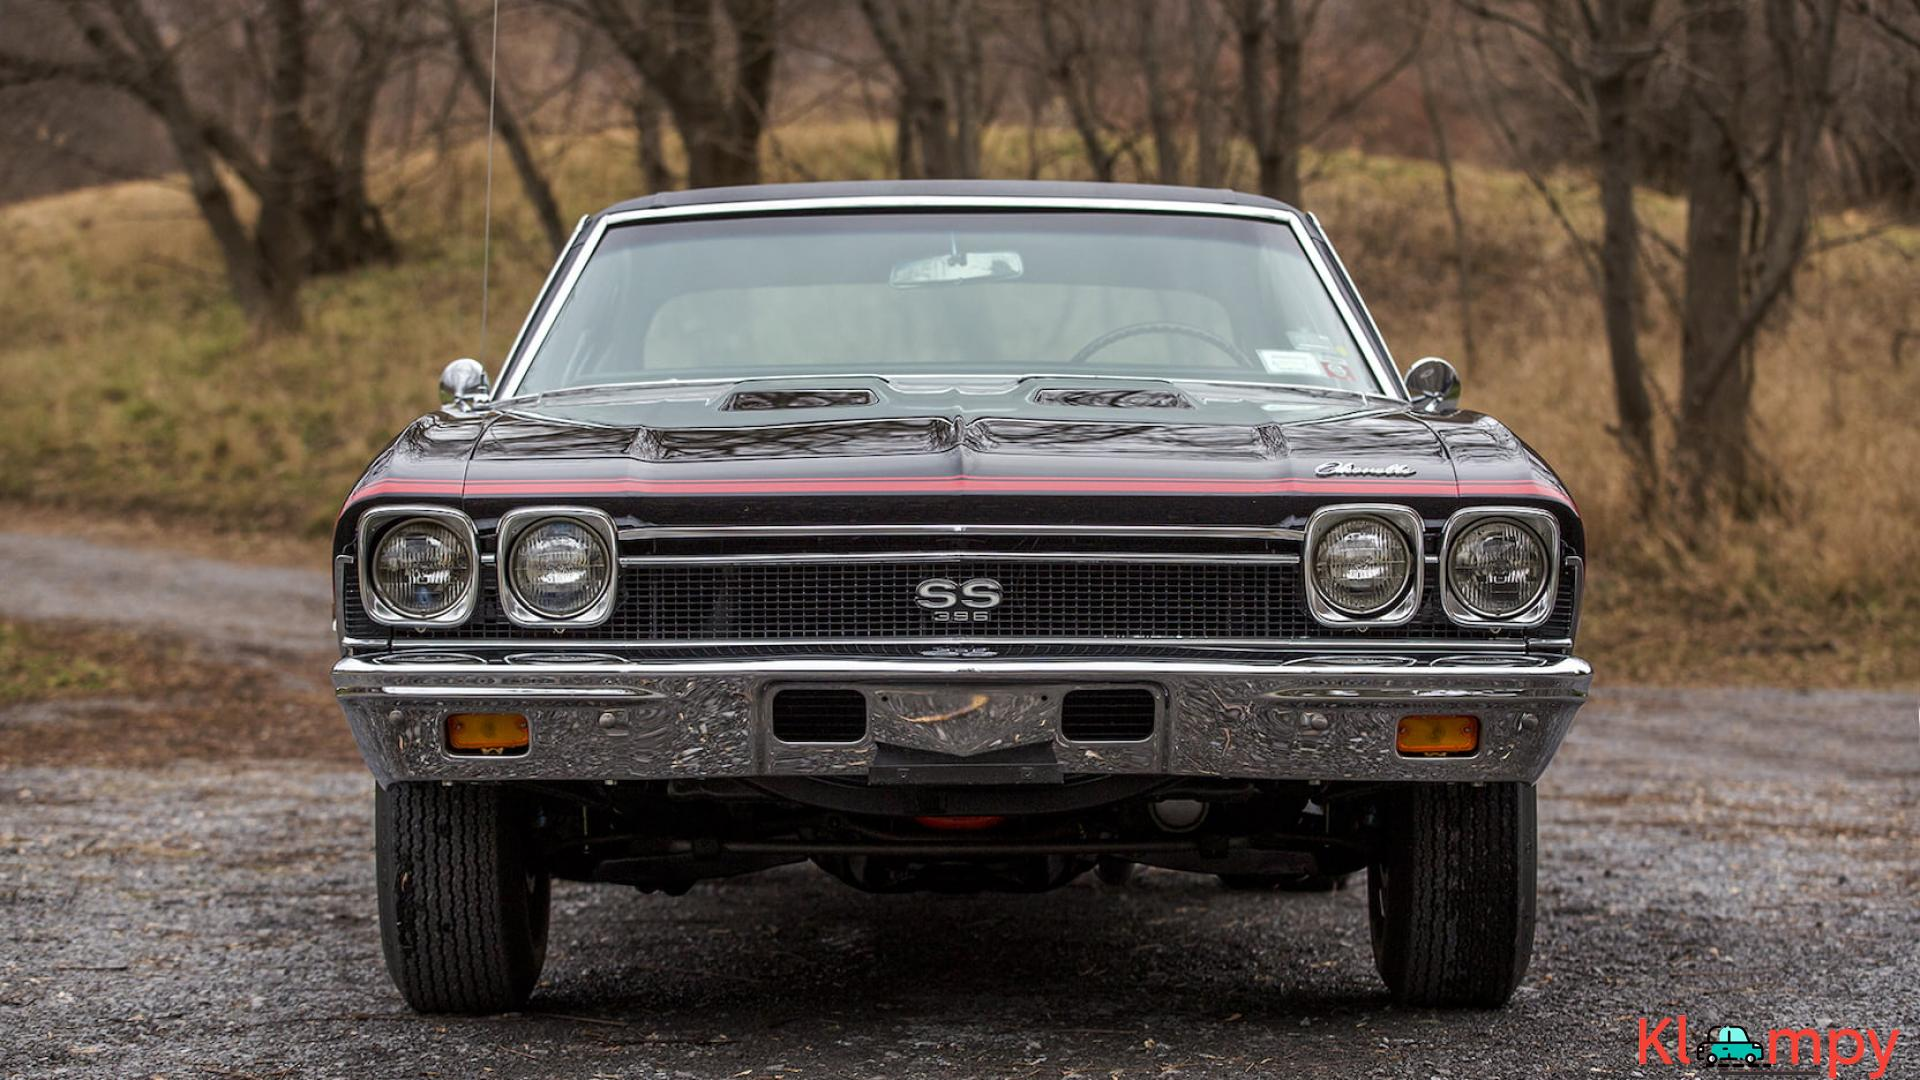 1968 Chevrolet Chevelle SS 396 Matching Numbers - 13/15